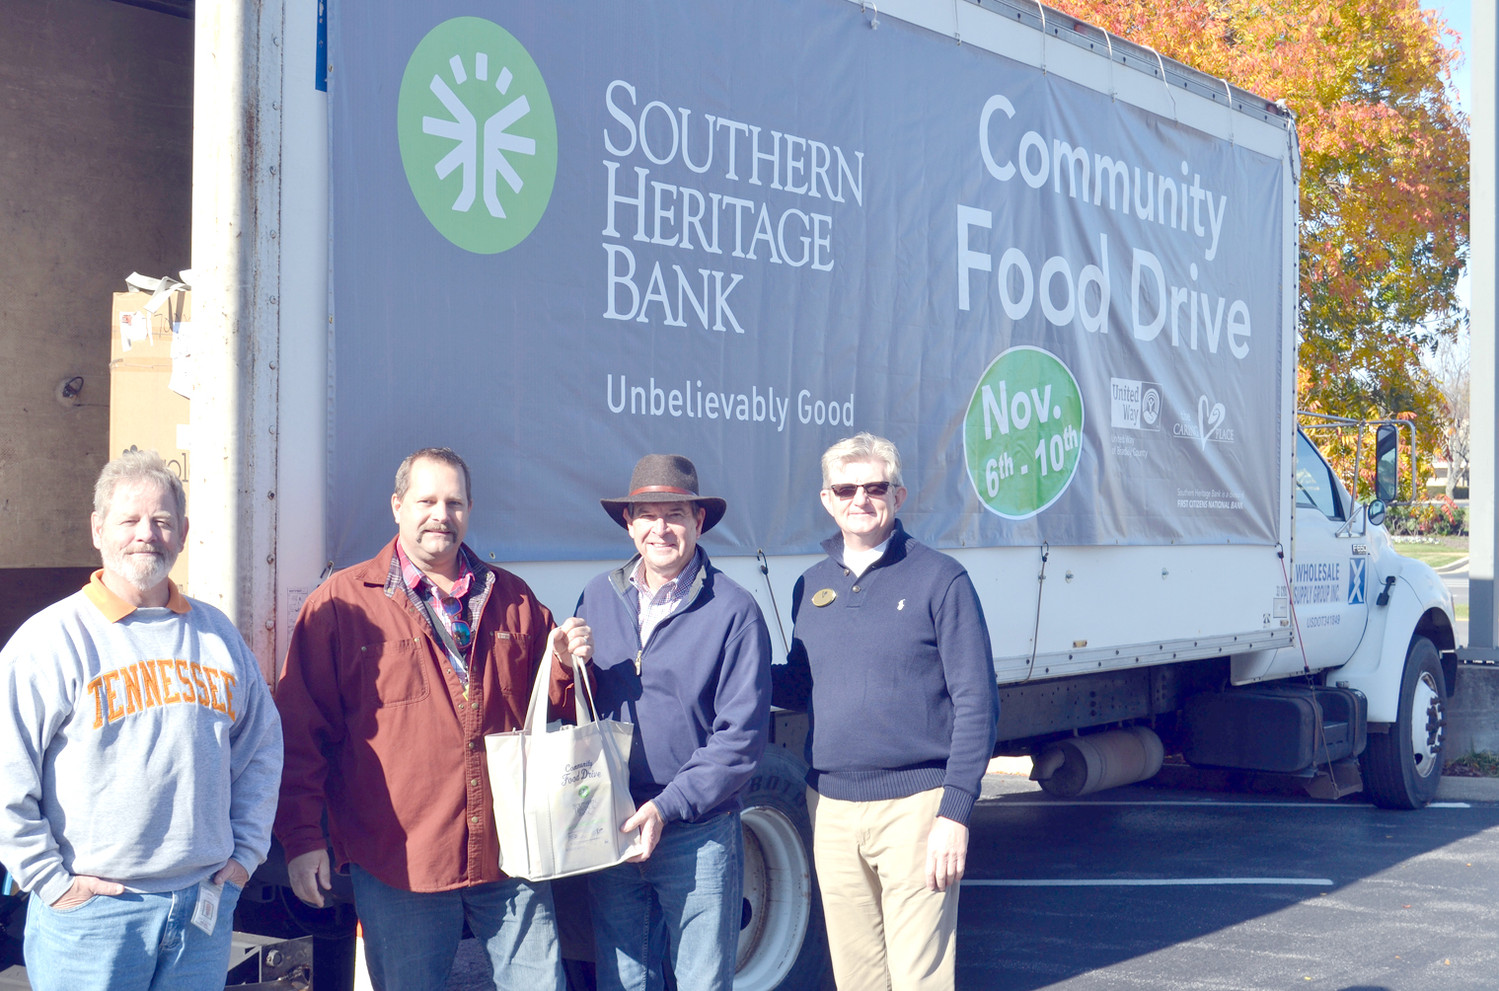 WATERVILLE COMMUNITY ELEMENTARY participated in the annual Southern Heritage Bank Food Drive. From left are Jeff Walker, Todd Gunderson, Lee Stewart and Randy Howard.